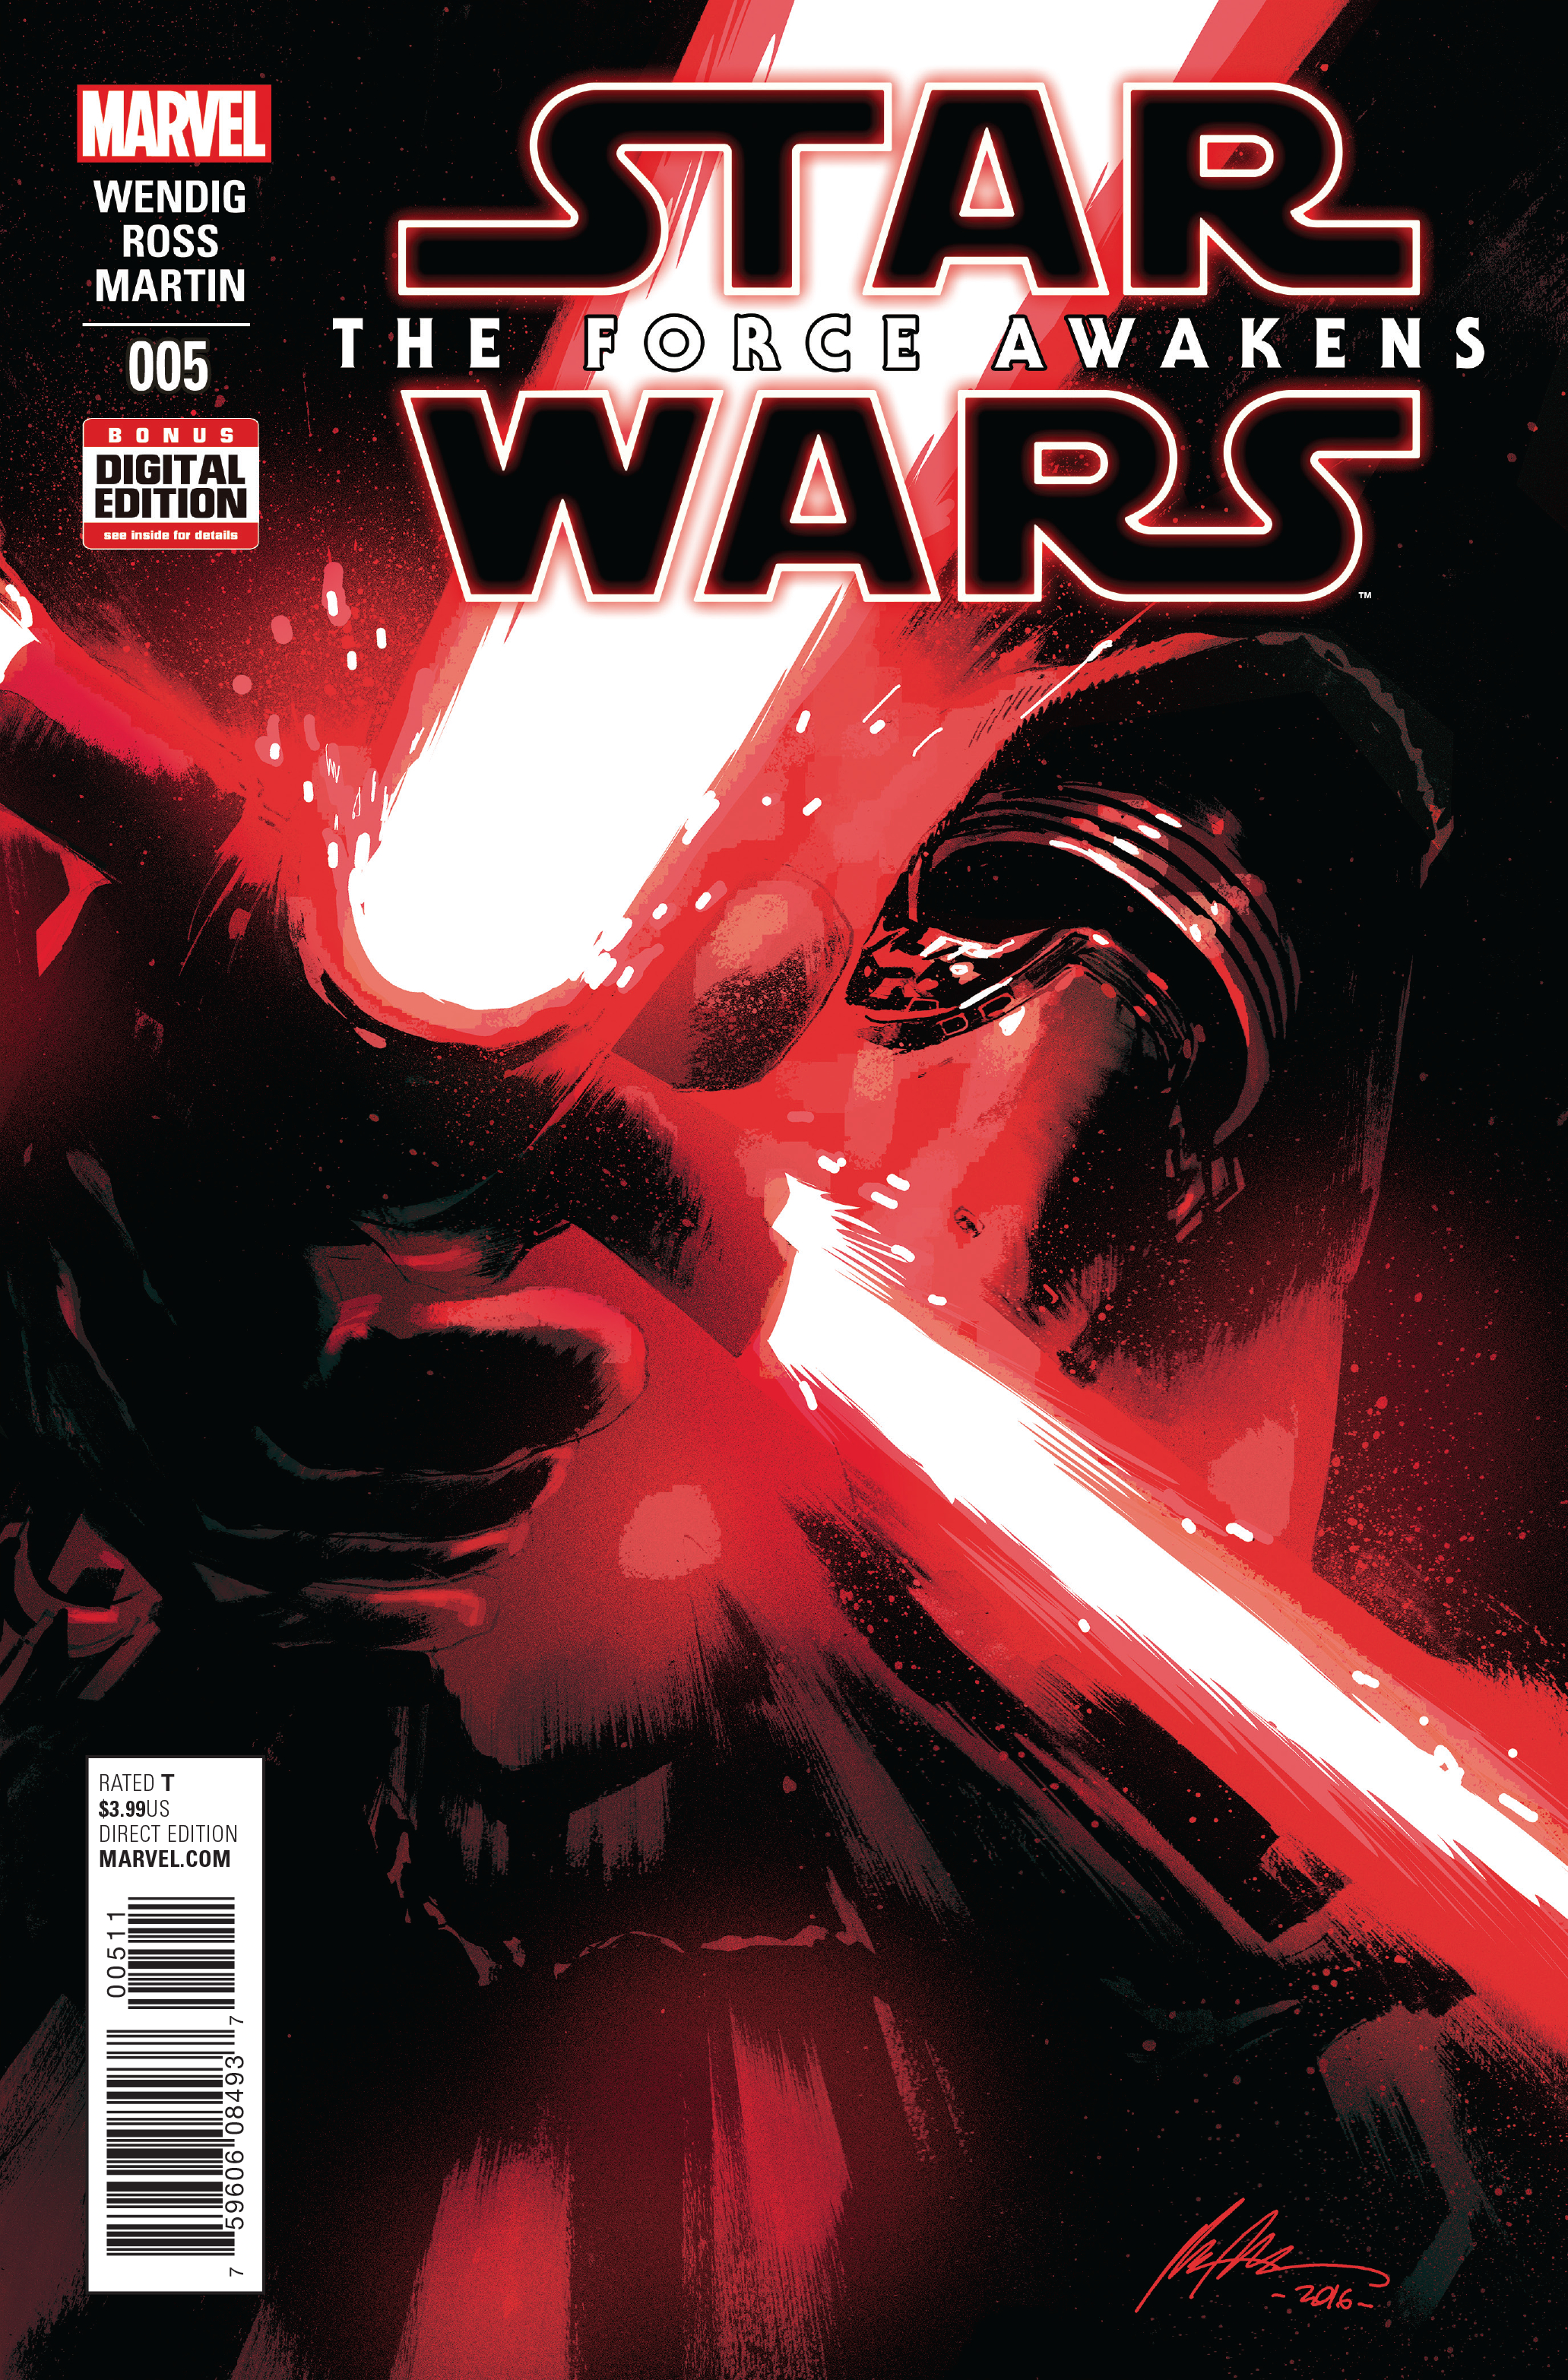 STAR WARS FORCE AWAKENS ADAPTATION #5 (OF 6)